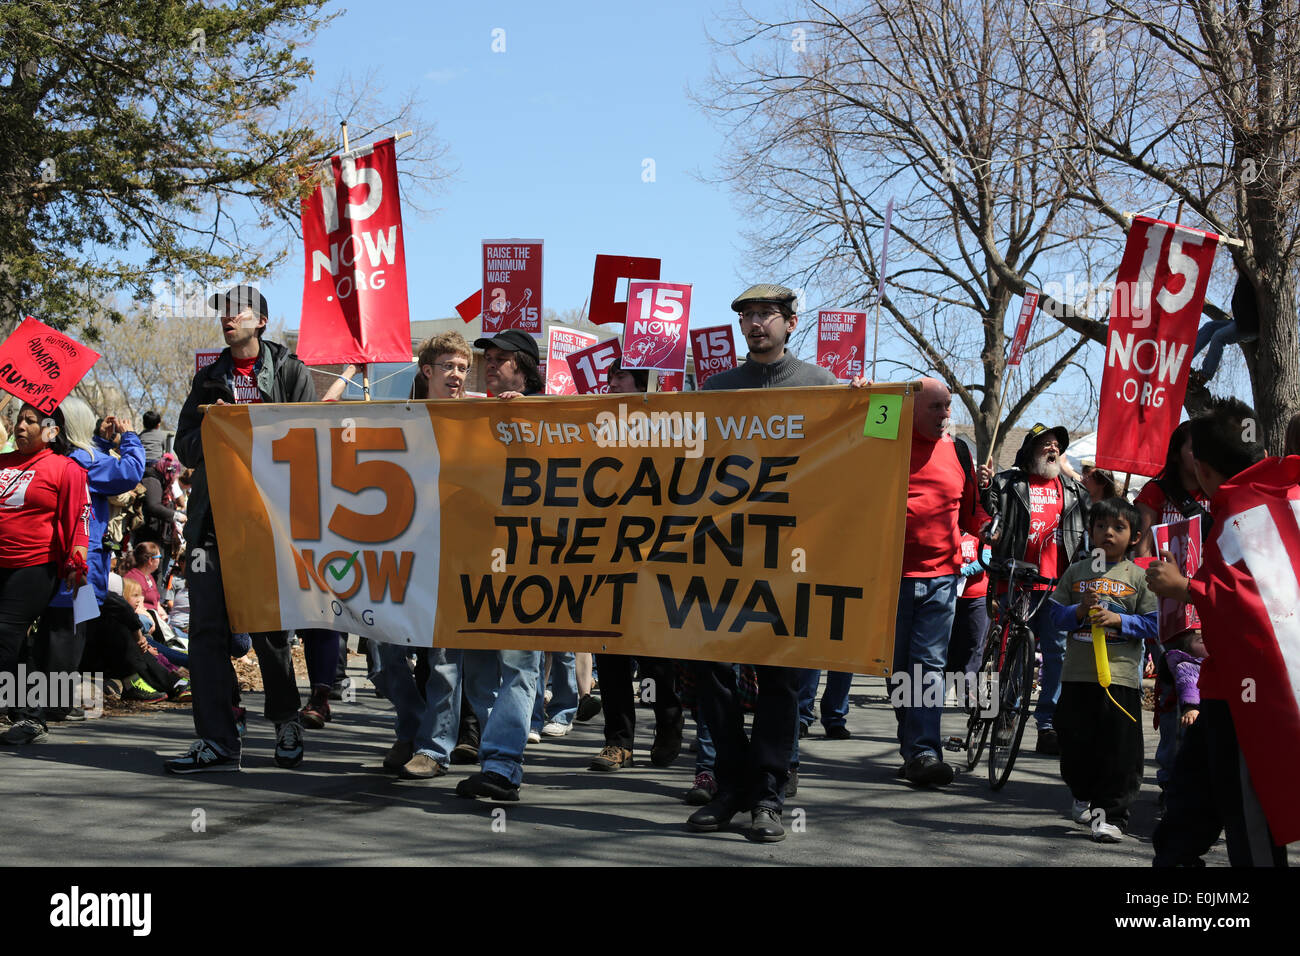 Protesters march for an increase in minimum wage. - Stock Image